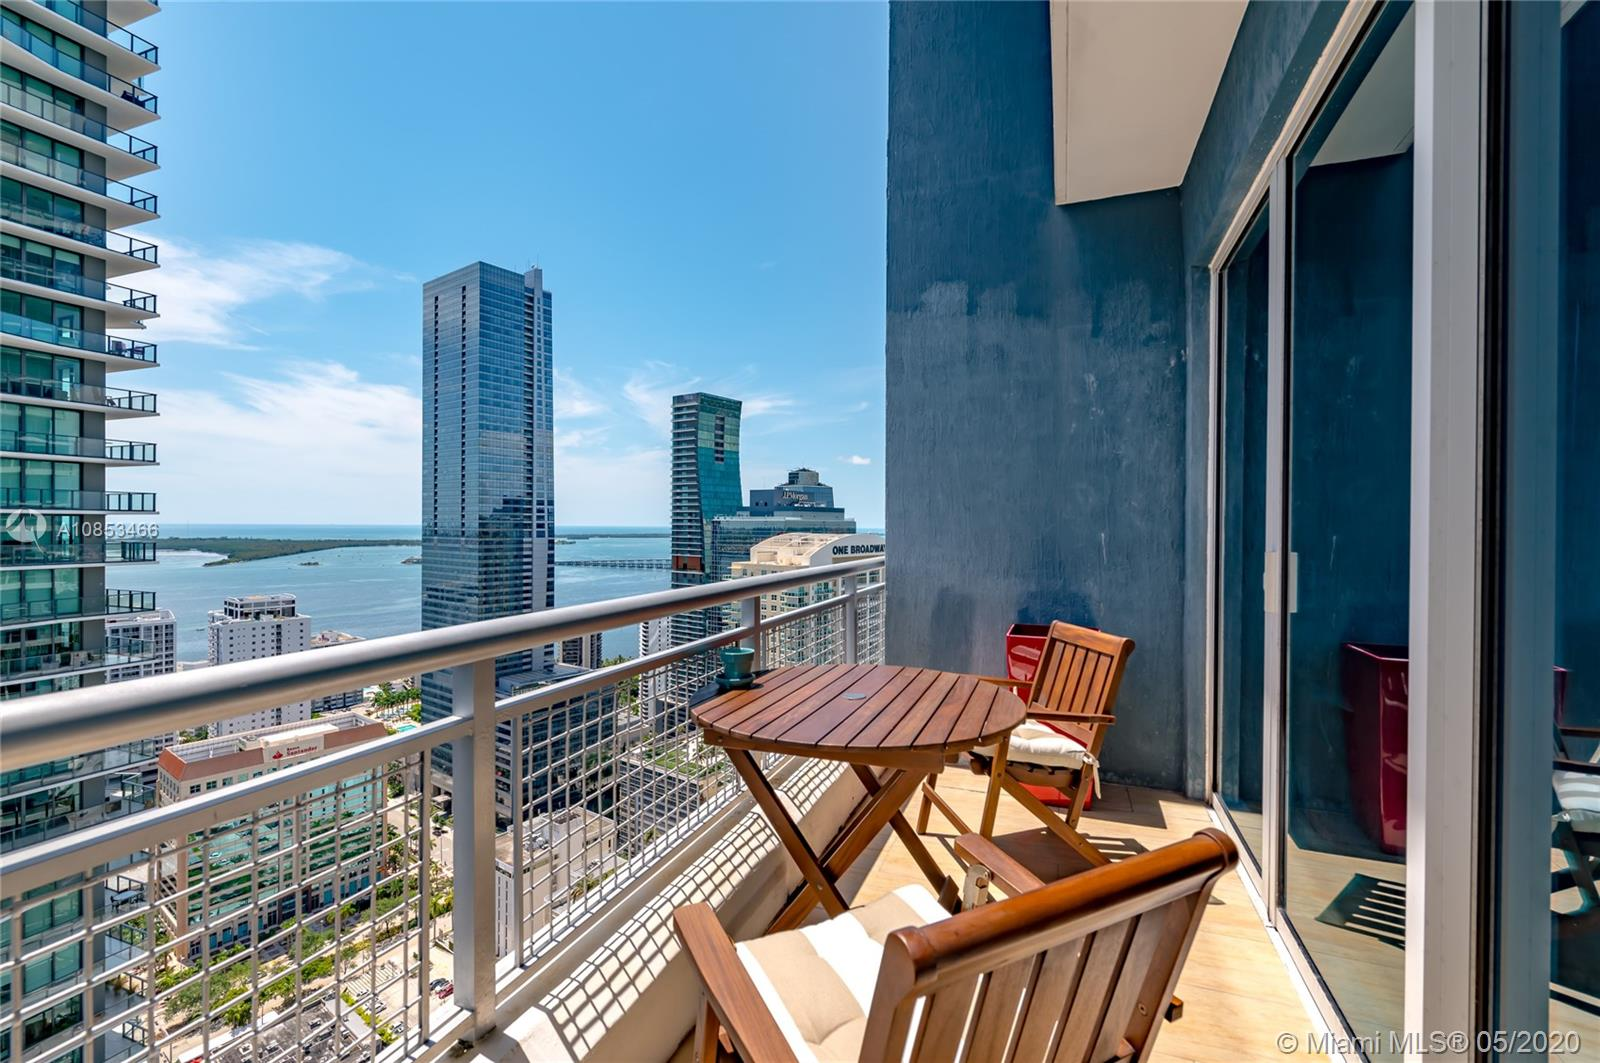 60 SW 13th St # 3812, Miami, Florida 33130, 2 Bedrooms Bedrooms, ,3 BathroomsBathrooms,Residential,For Sale,60 SW 13th St # 3812,A10853466